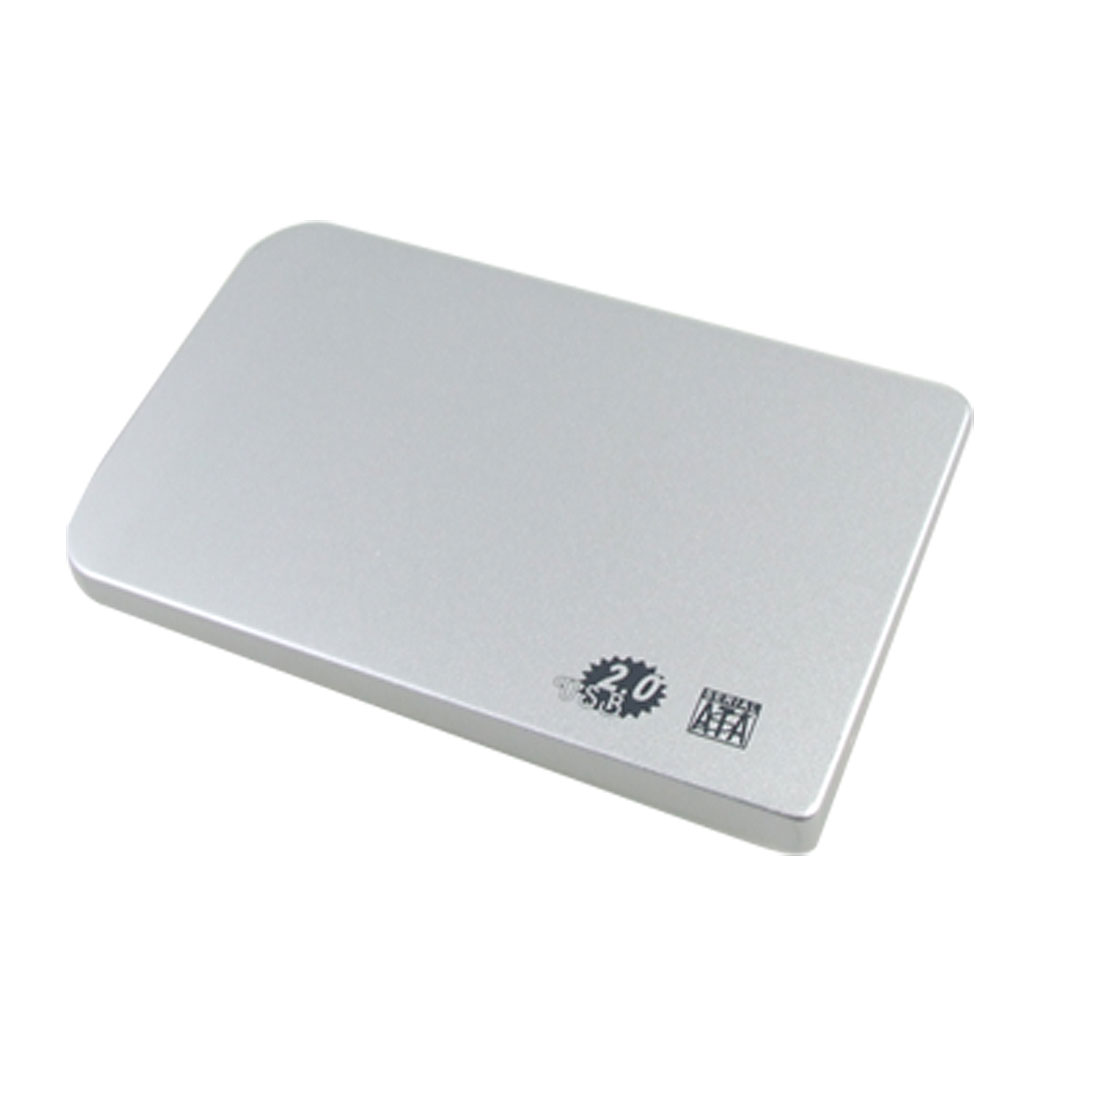 "Silver Tone Aluminum USB HDD Enclosure Case for 2.5"" SATA Hard Drive Disk"